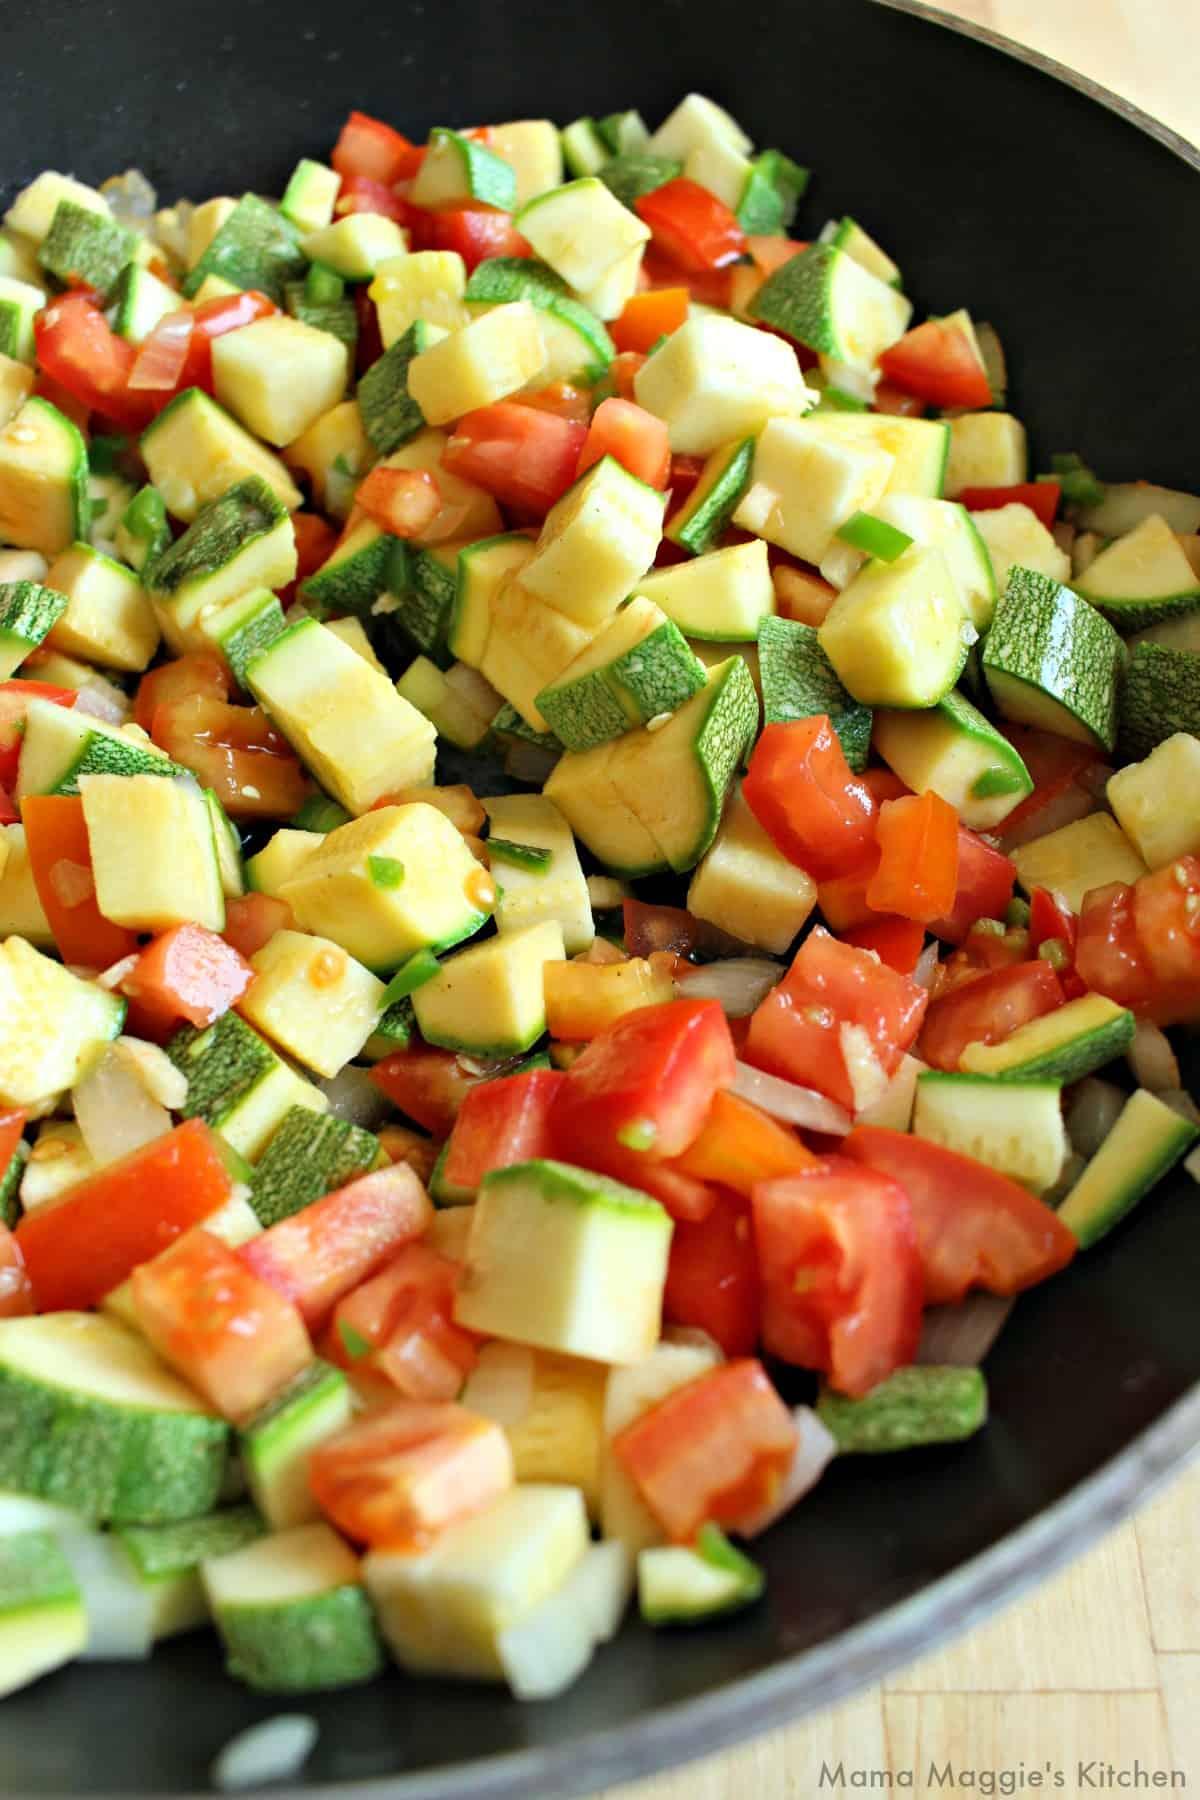 Calabacitas, tomatoes, and onions cooking in a skillet.